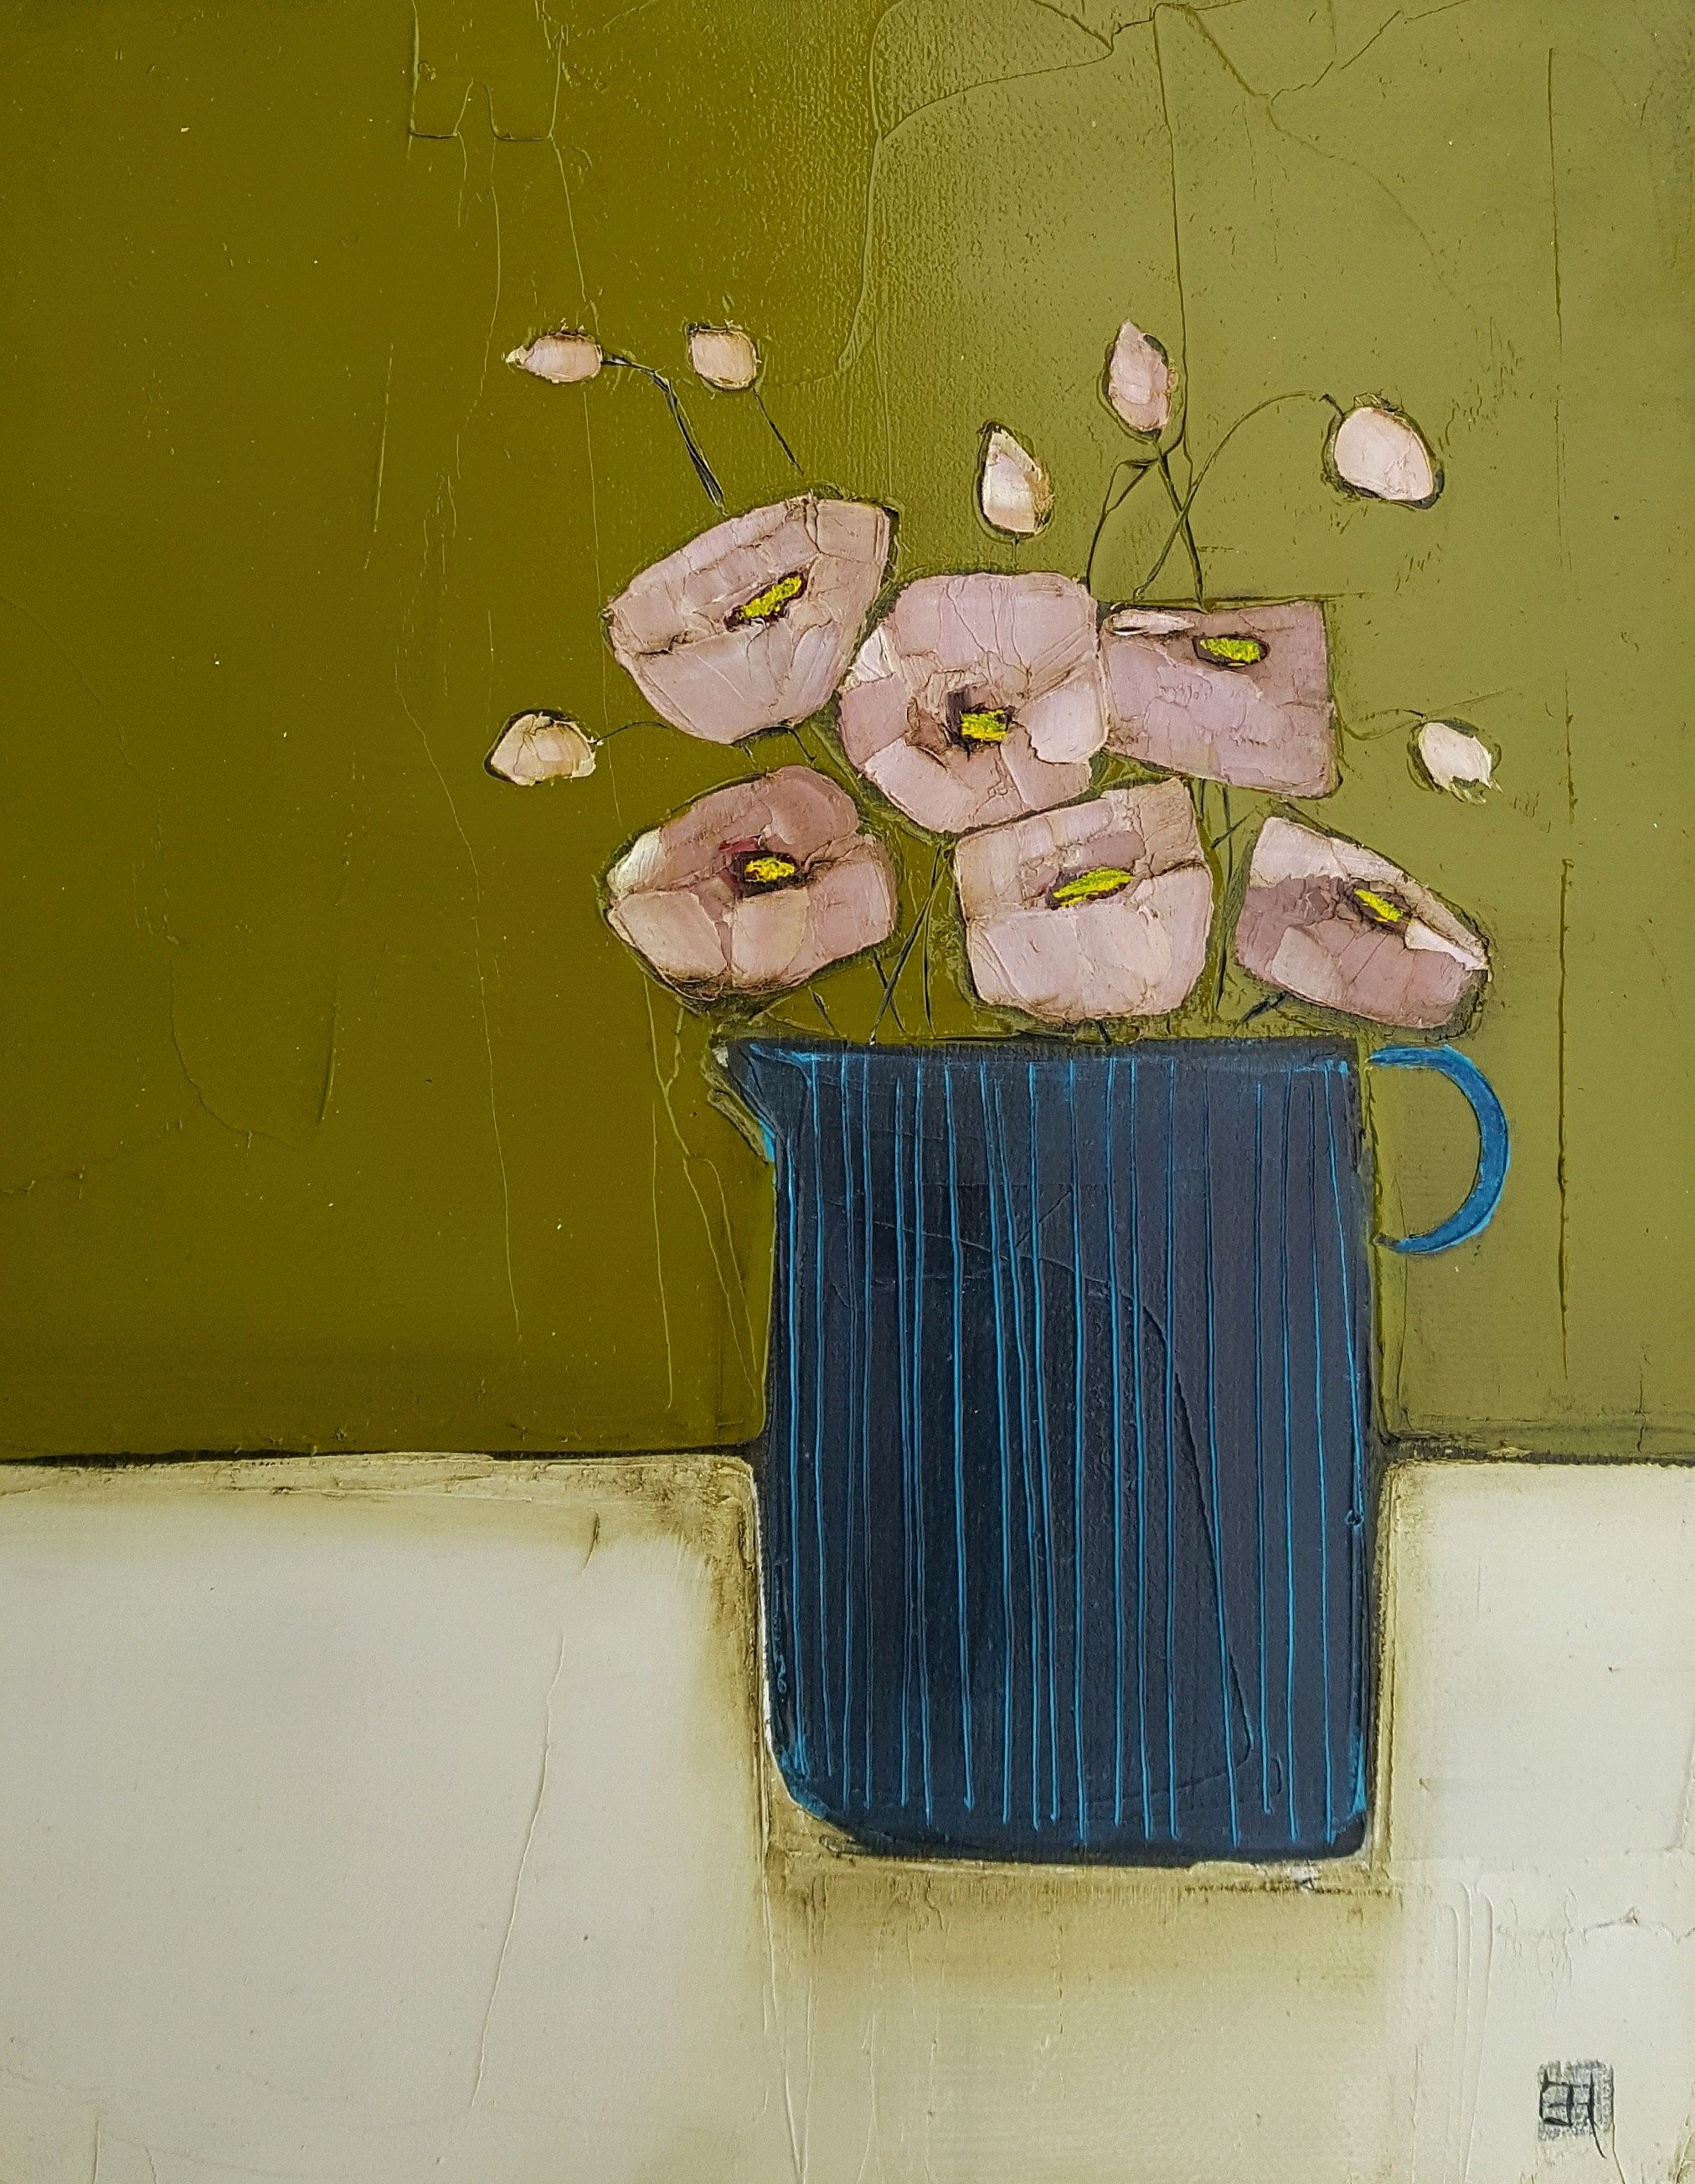 Eithne  Roberts - Blue jug on green